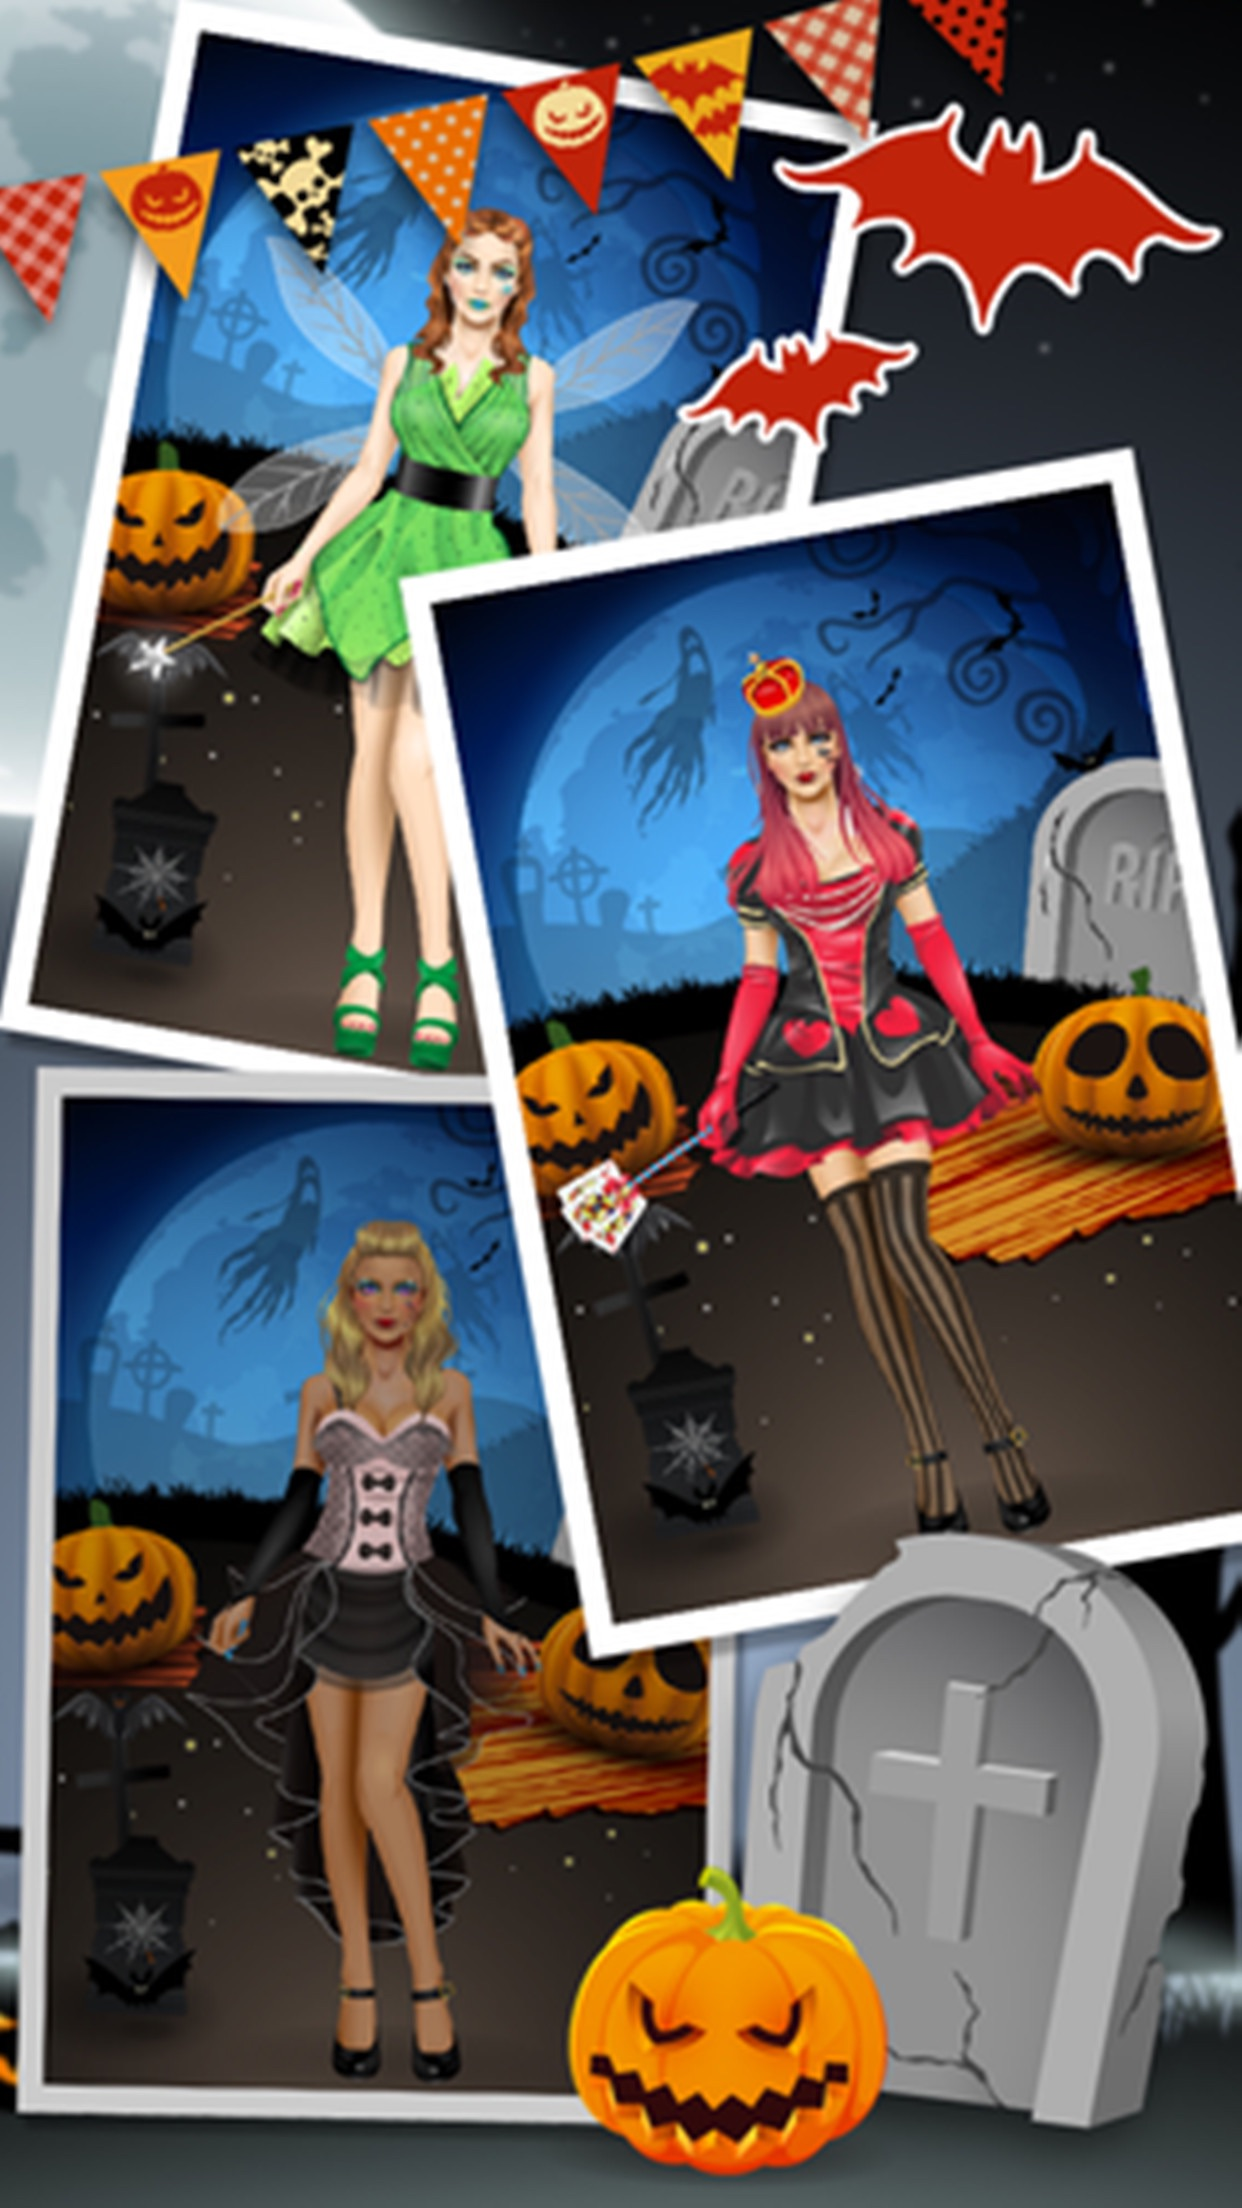 Halloween SPA, dress design - kids games Screenshot